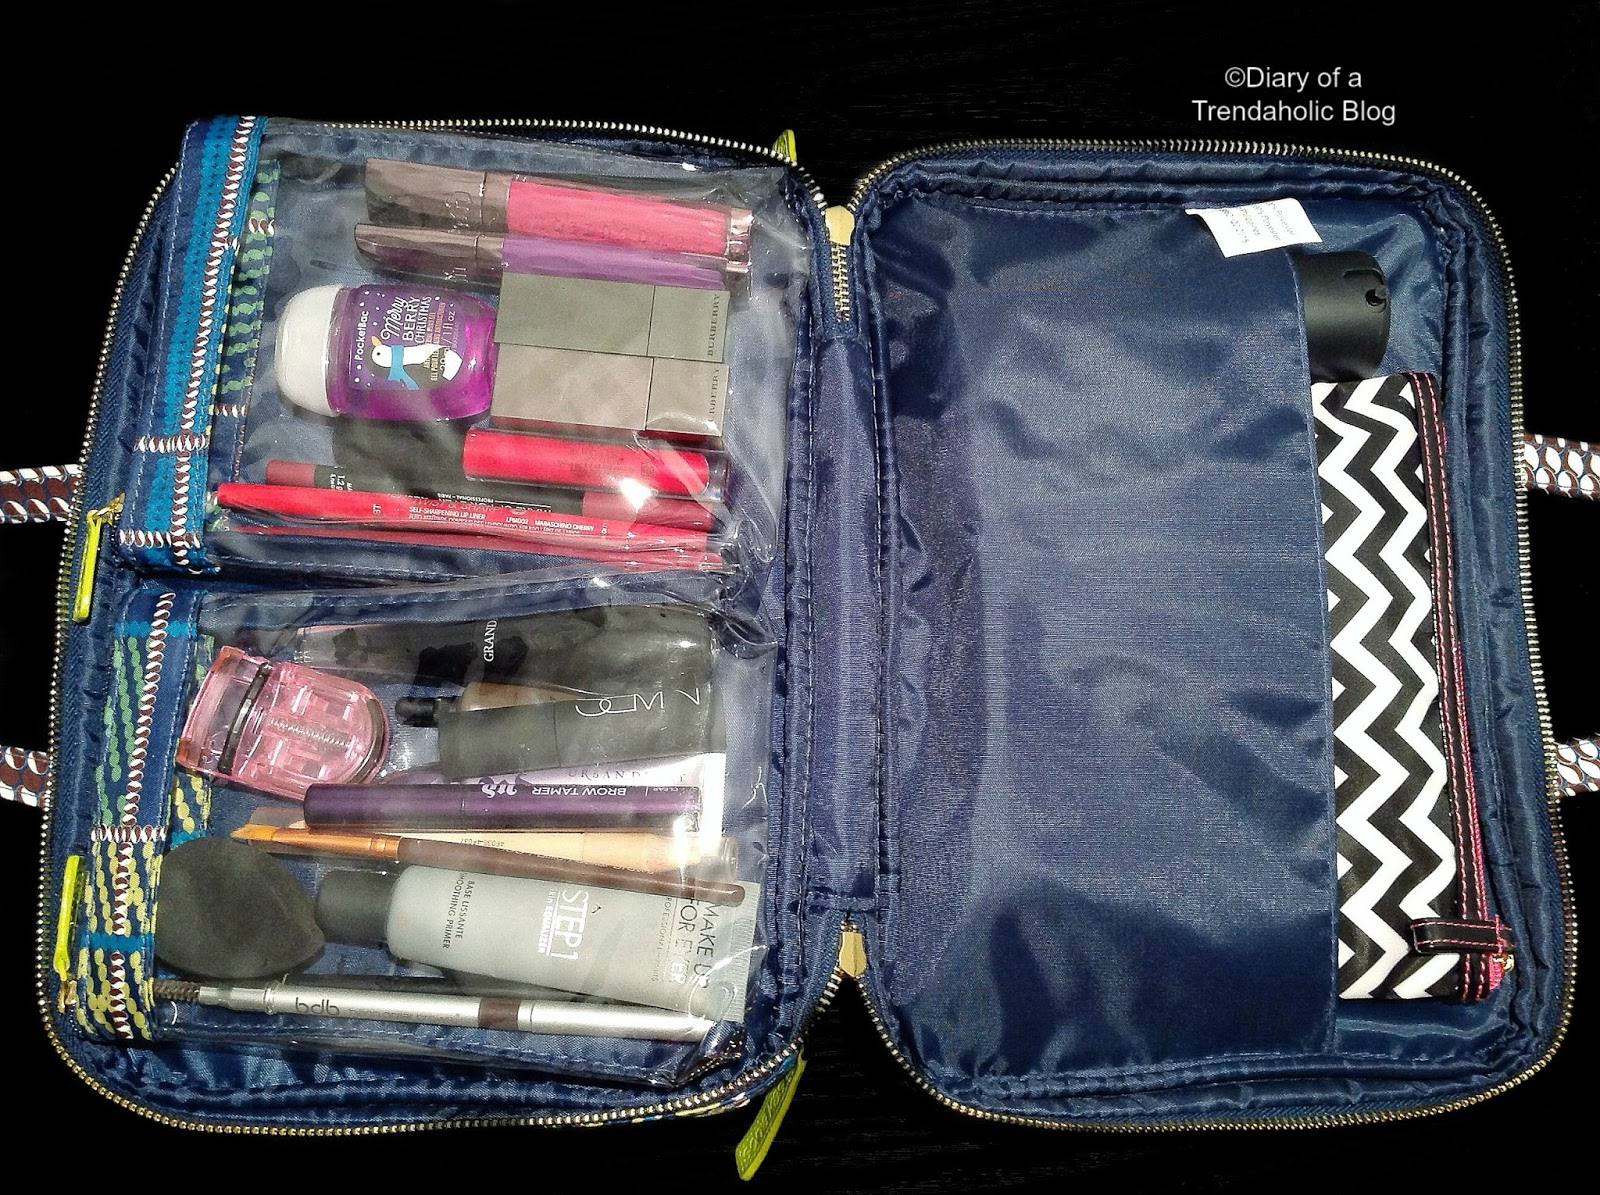 Diary of a Trendaholic : How to Pack & Organize Makeup & Beauty ...